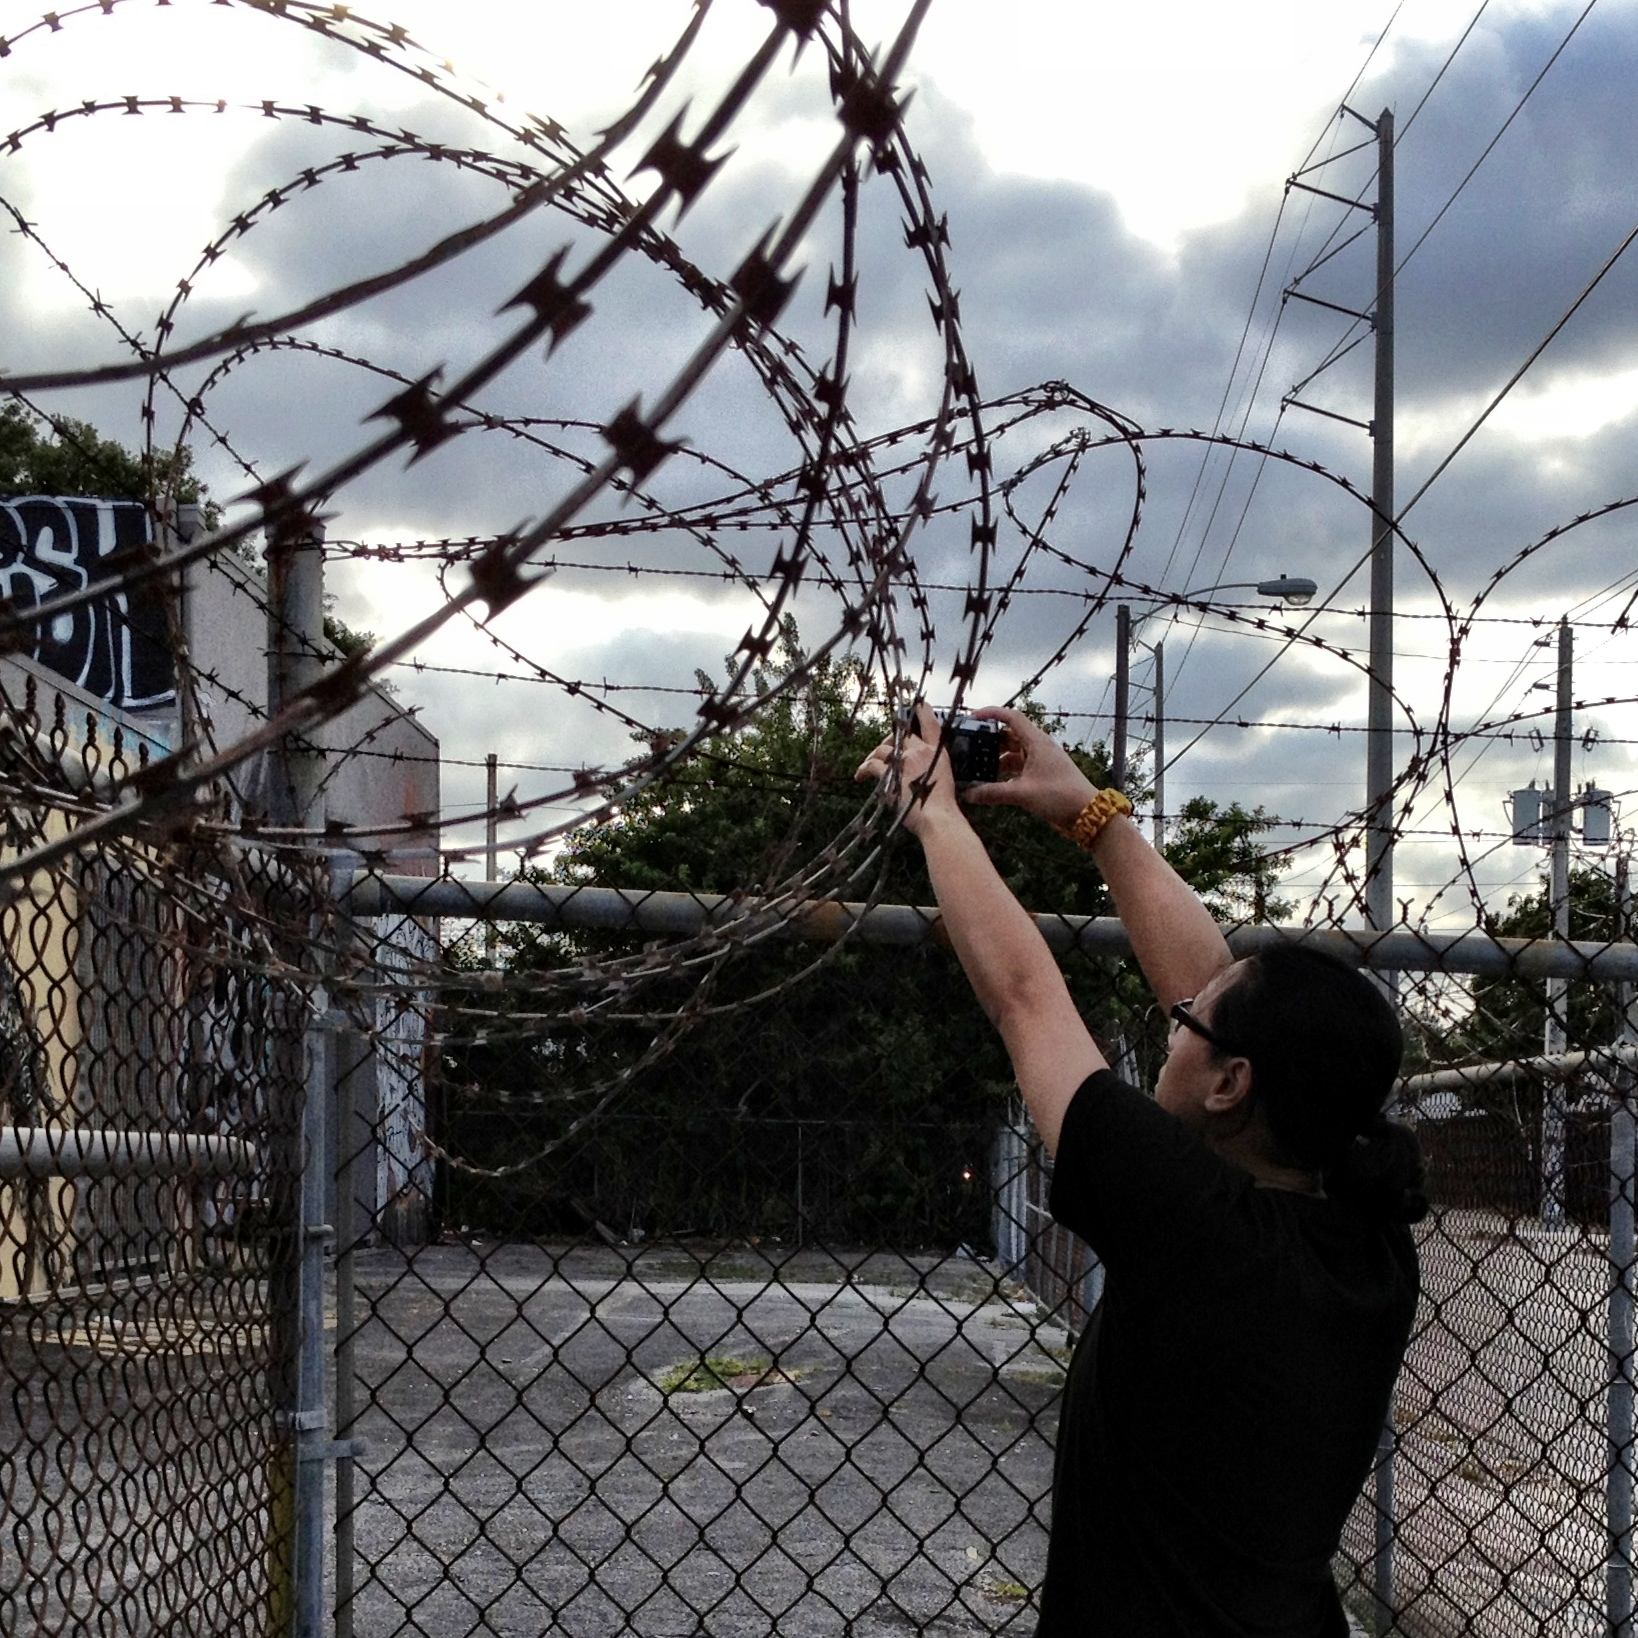 File:Over wired fences of Wynwood (8570071712).jpg - Wikimedia Commons